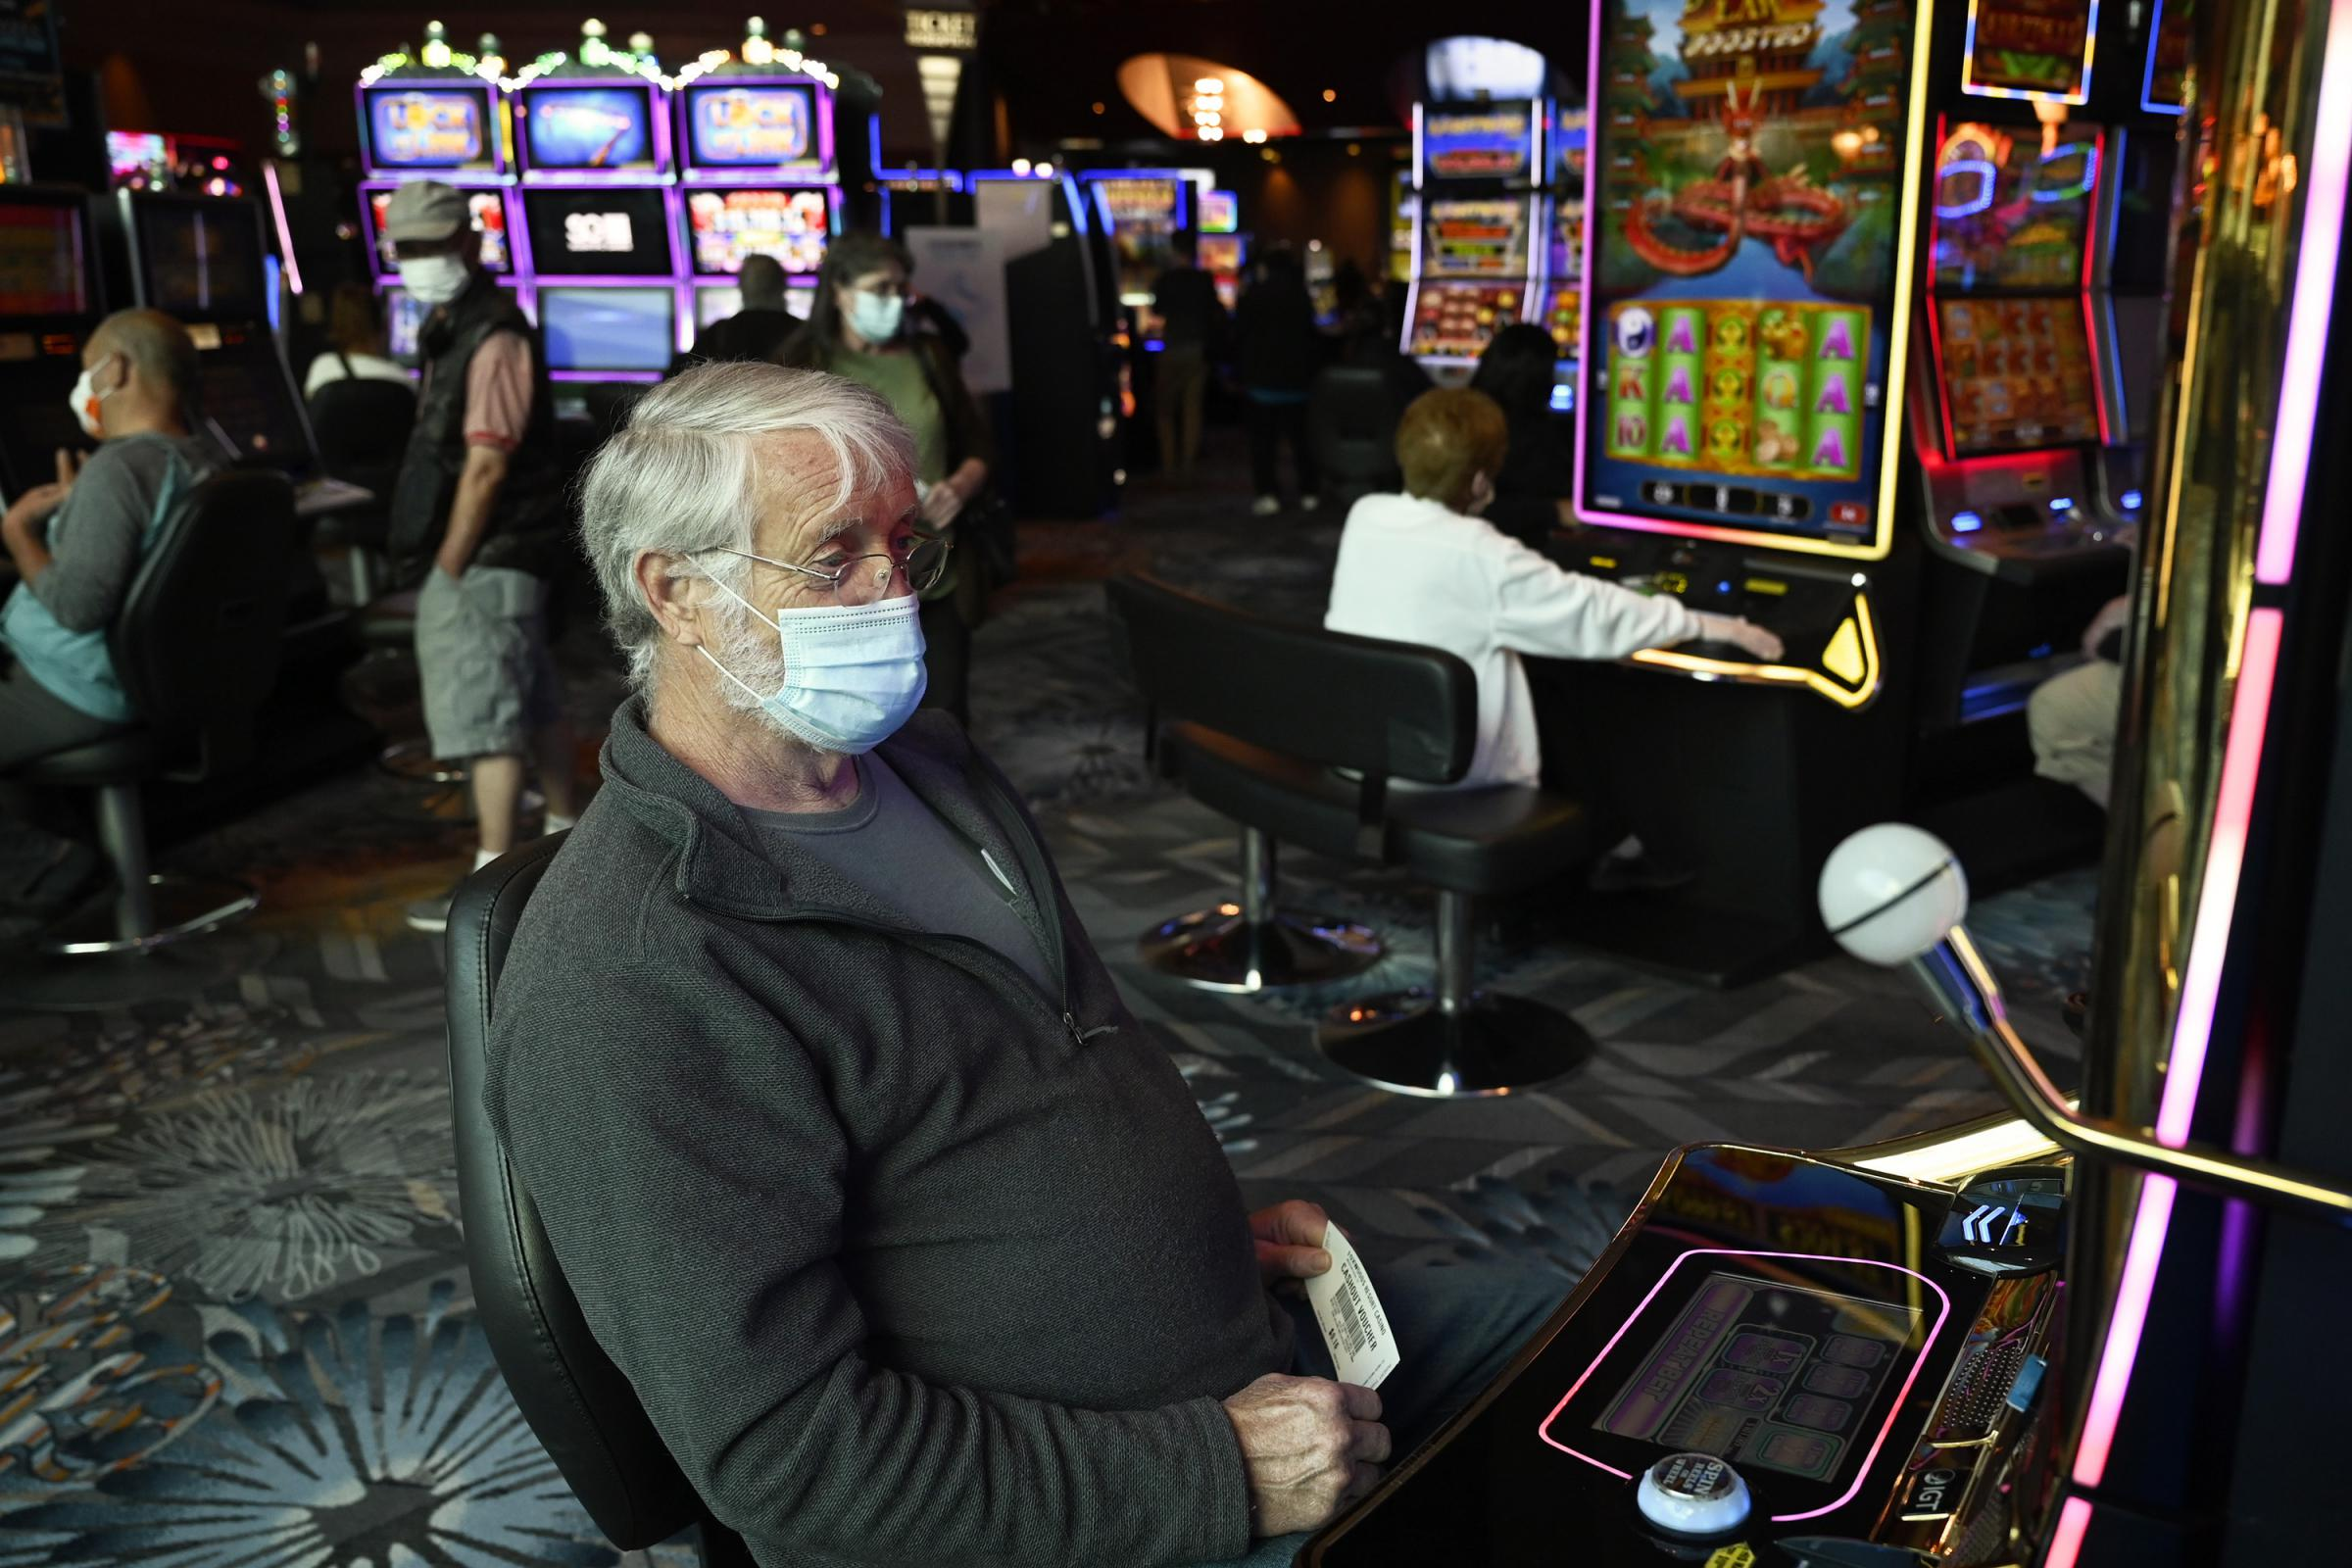 Connecticut casinos show glimpse of new normal upon re-opening